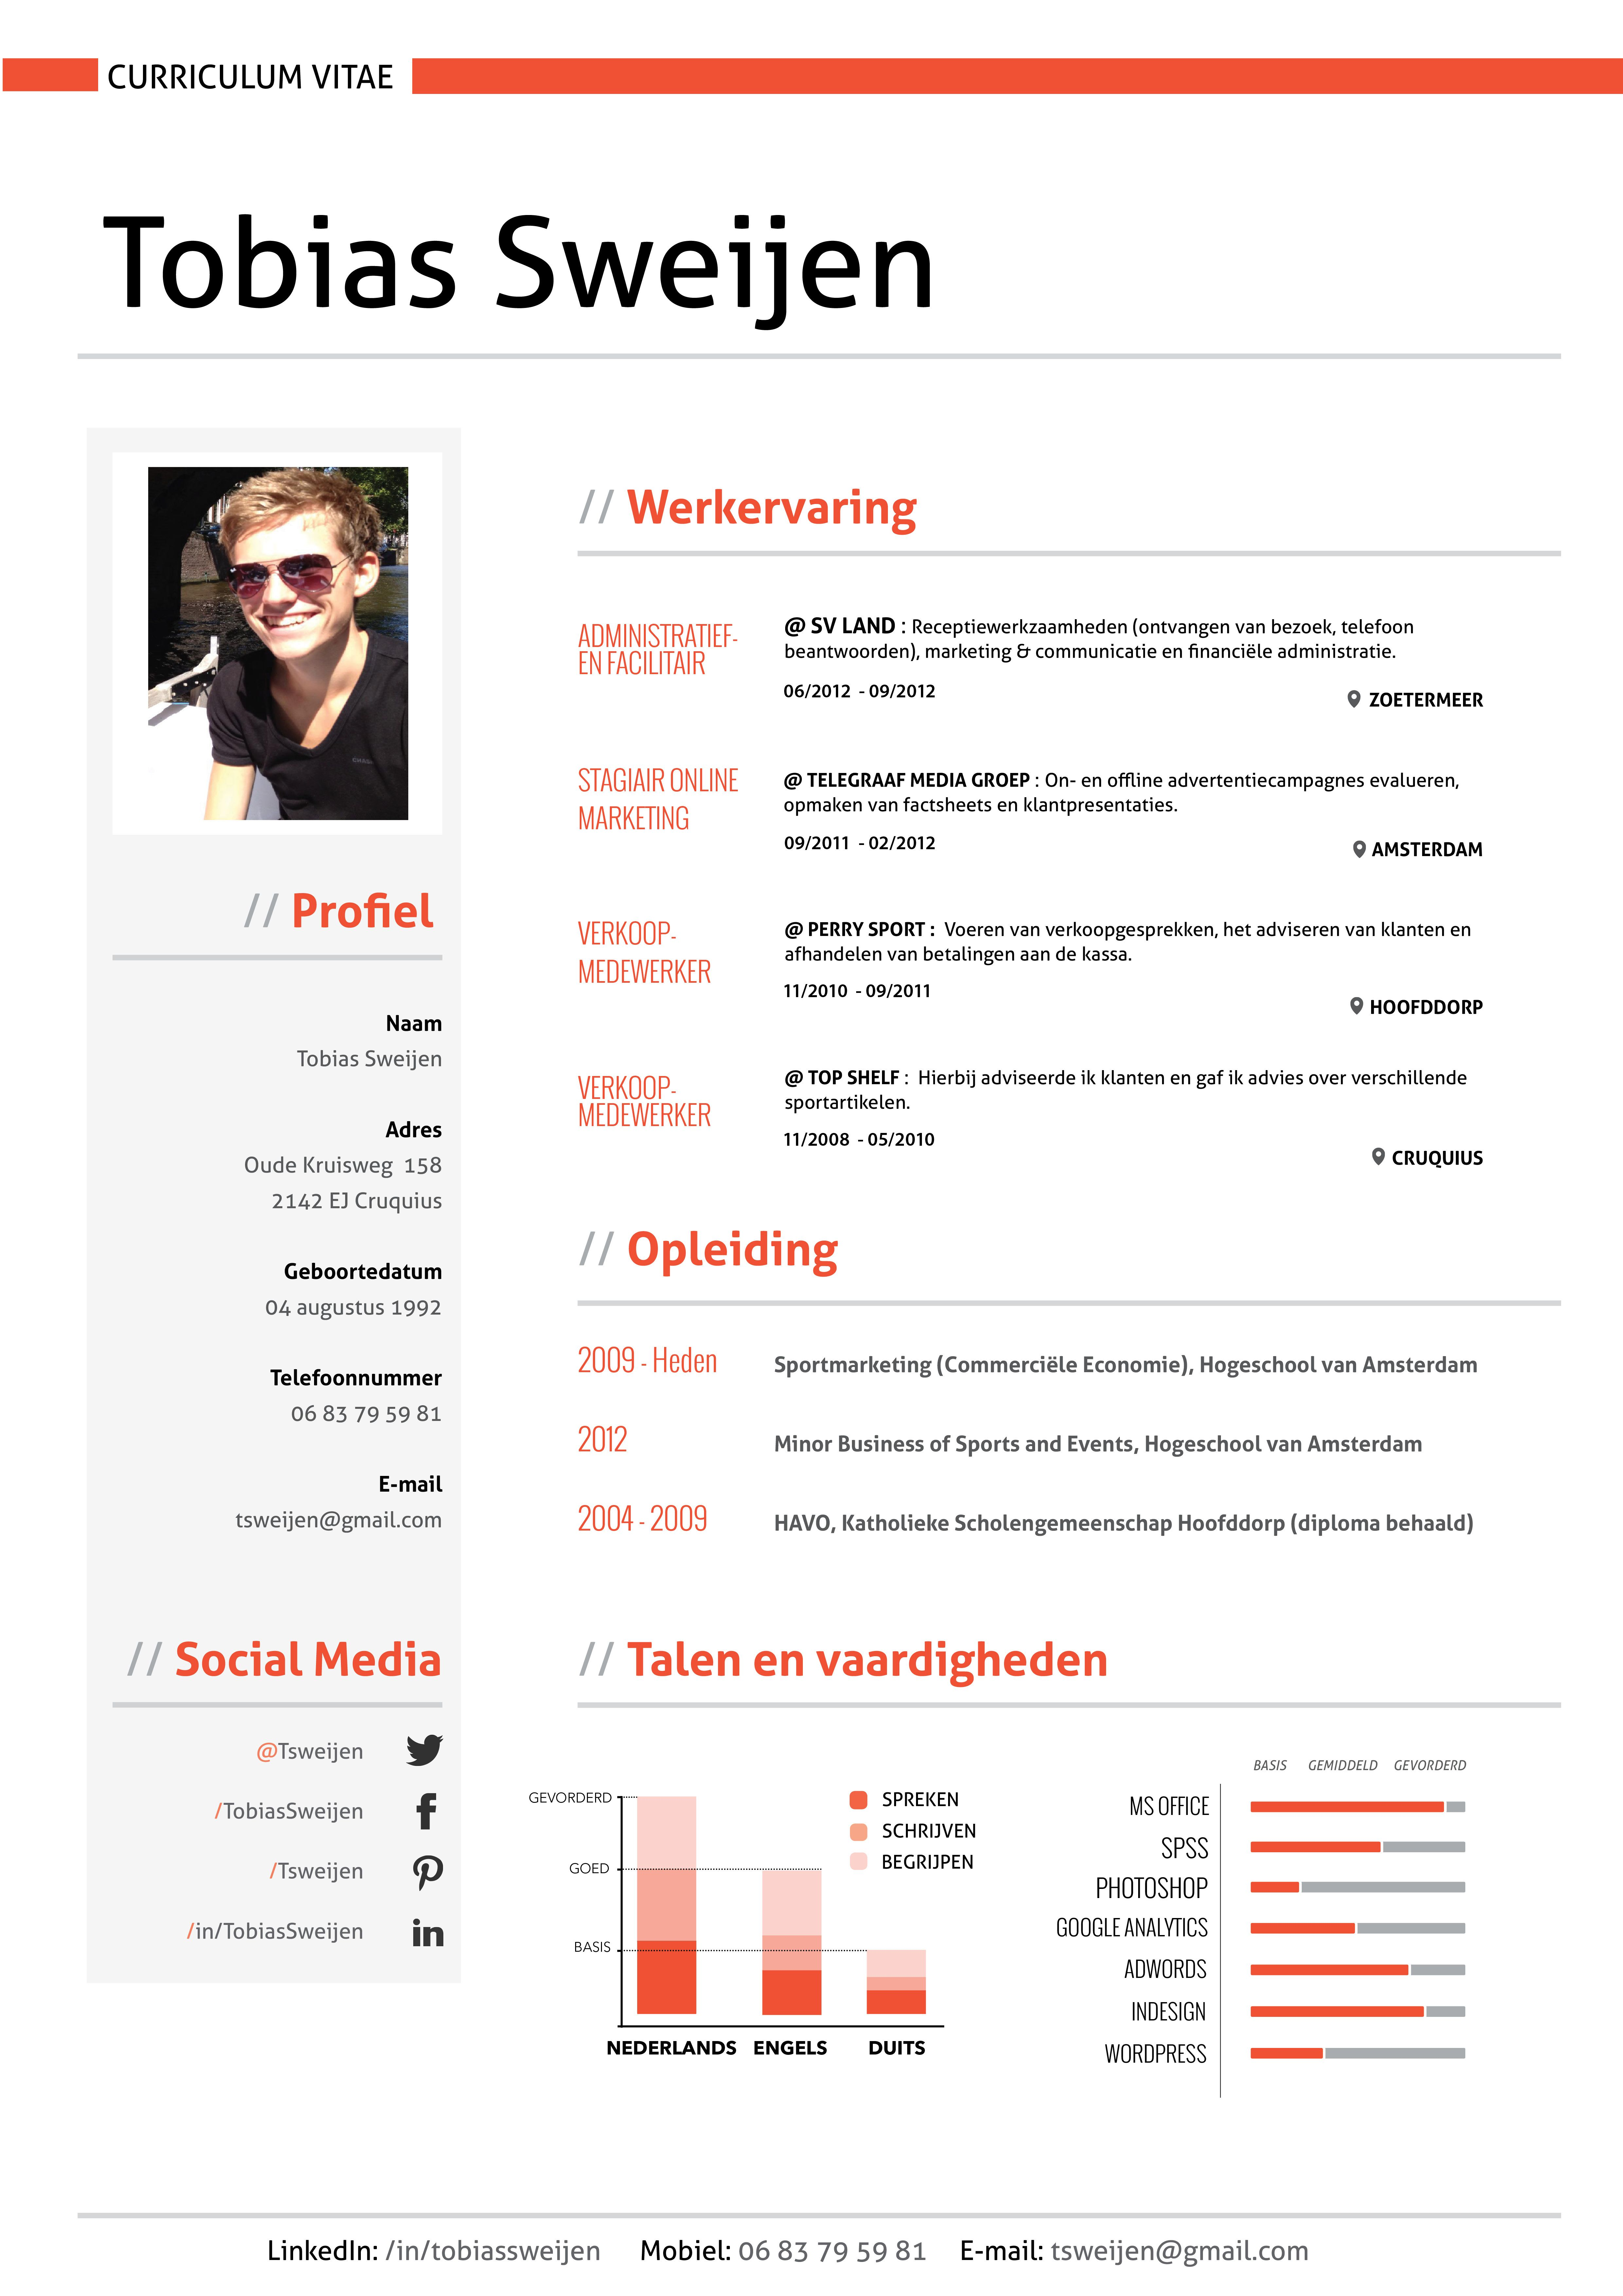 I design Infographic Resumes - check out my portfolio by clicking on ...